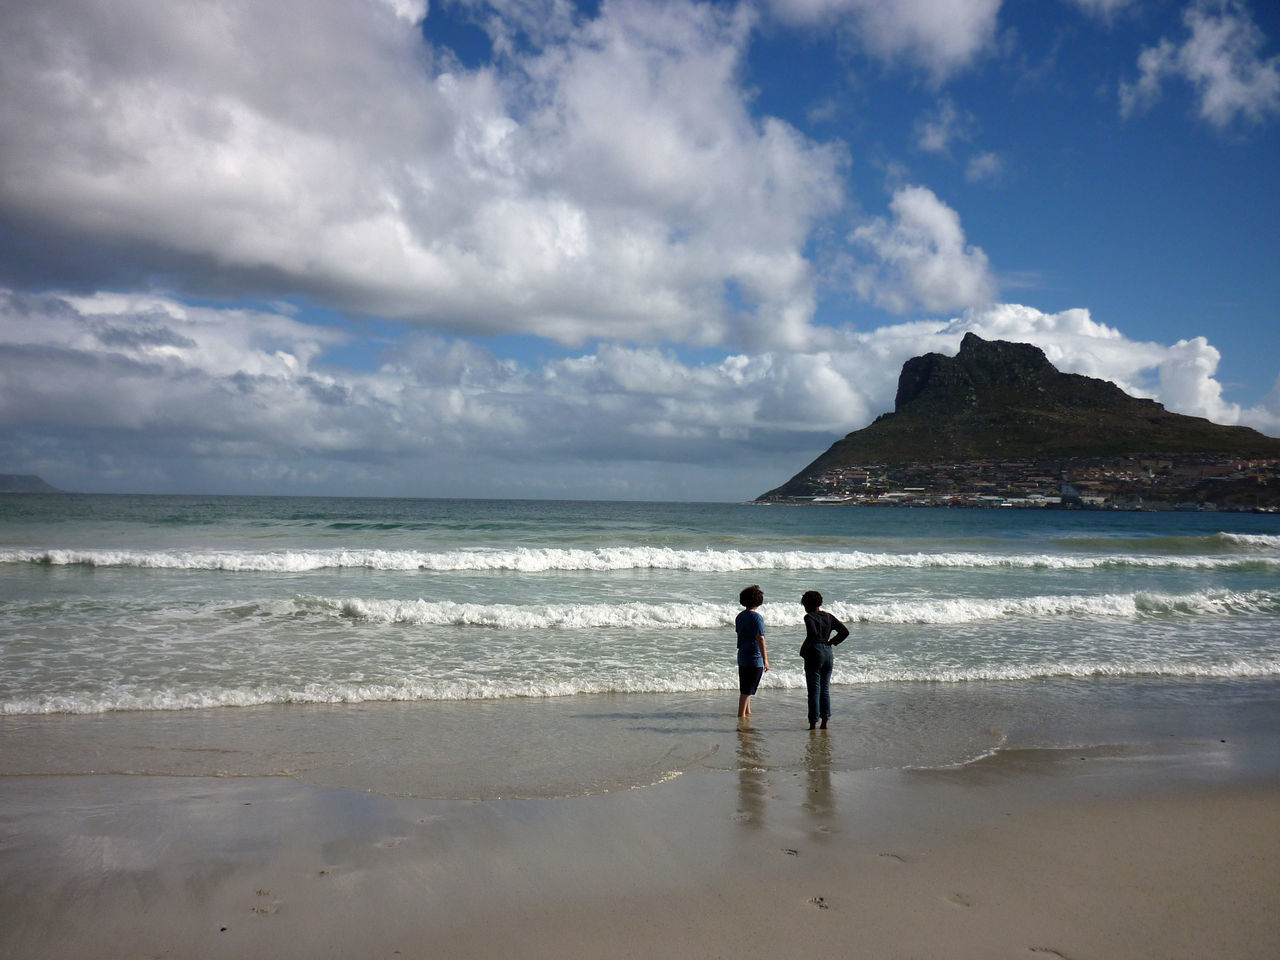 Best friends. Sea Beach Cloud - Sky Dramatic Sky Horizon Over Water Two People Nature Sky Beauty In Nature Togetherness Sand Hout Bay Hout Bay Beach Friends Mountain Mountain View